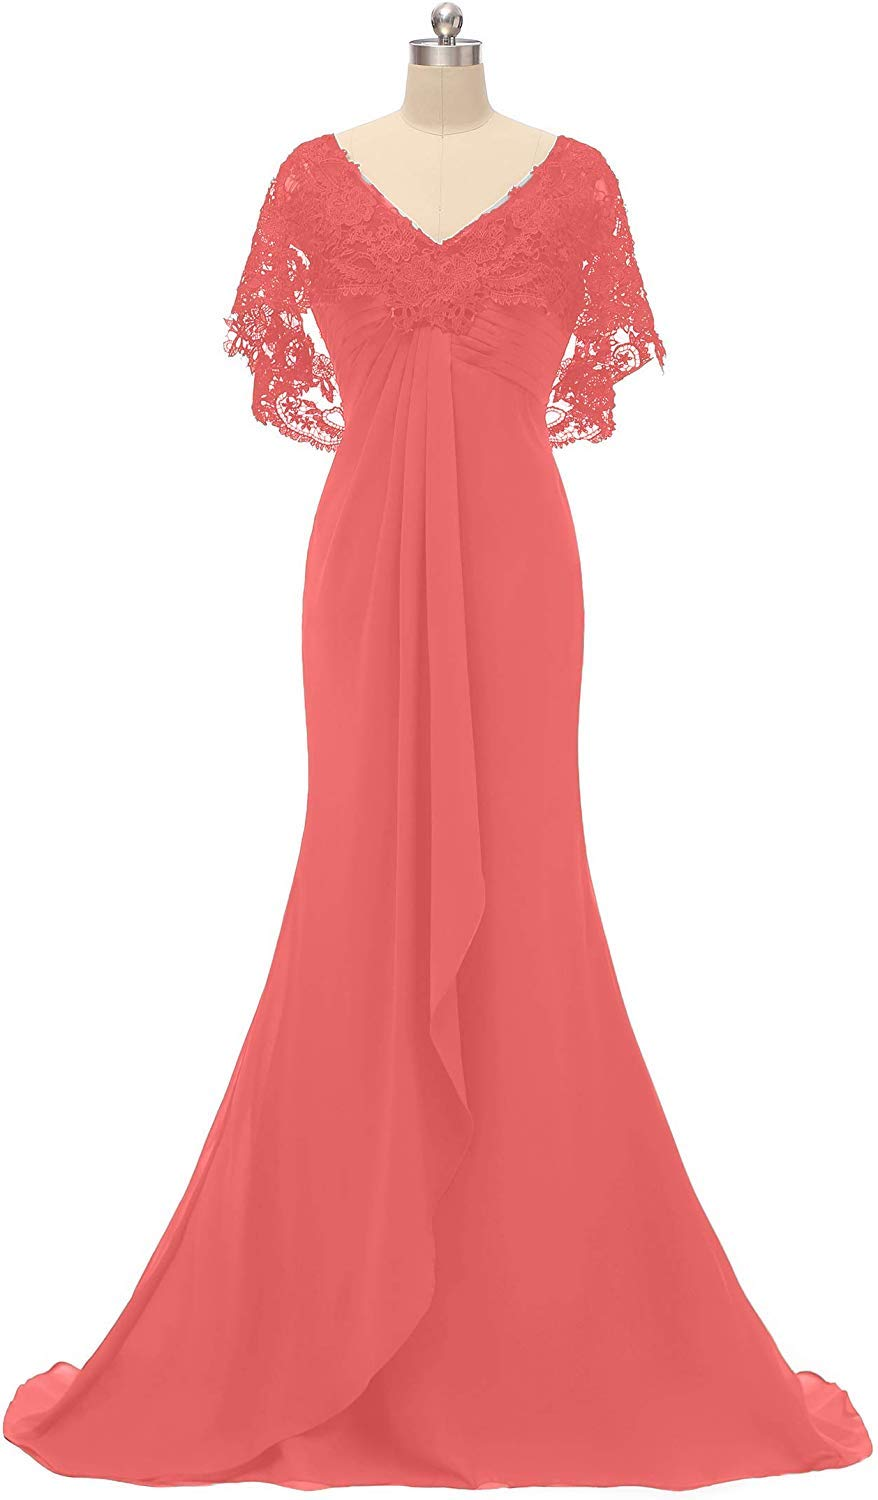 fa37cc046f3e2 ... Lace Chiffon Long Prom Evening Dress Mother of The Bride Dresses  Wedding Gown Coral US24W. ; 